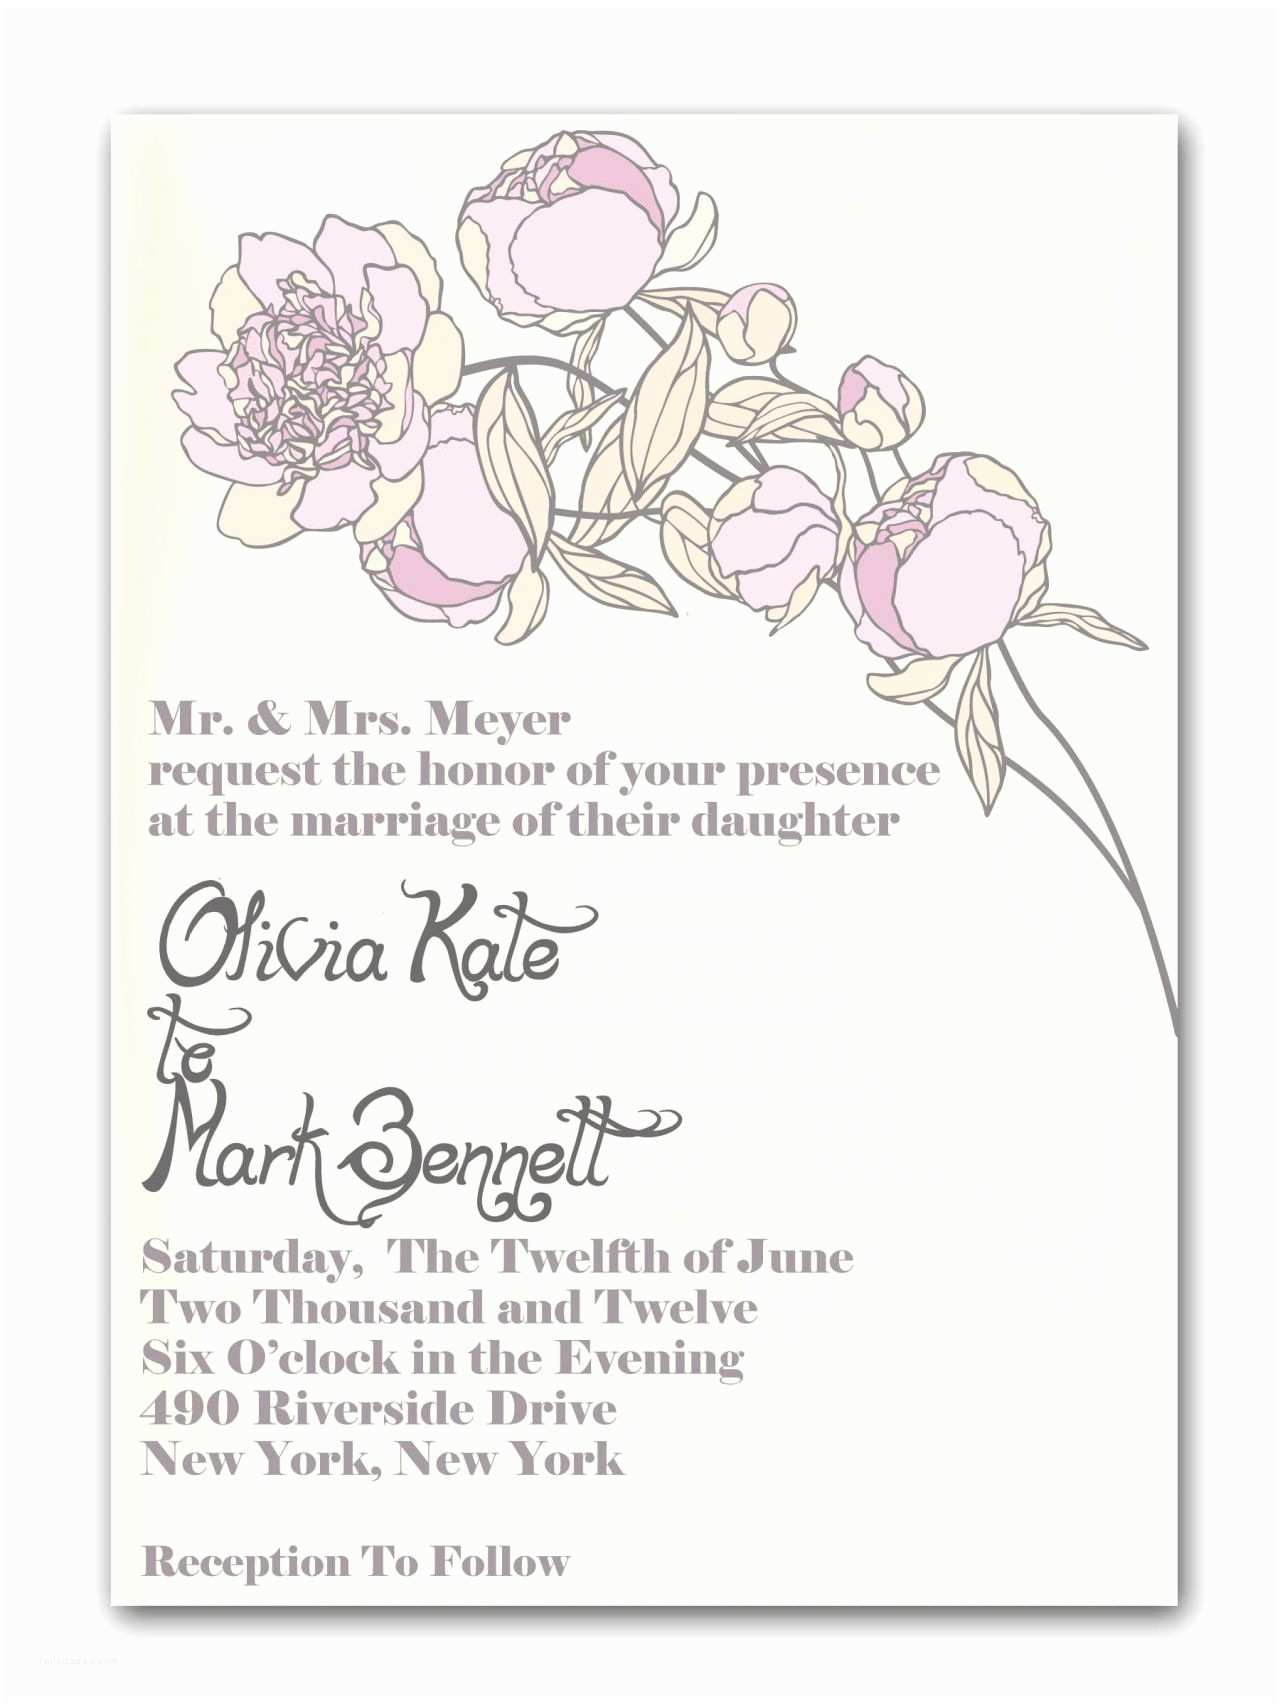 Tagline for Wedding Invitation Wedding Invitation Quotes Daily Quotes the Life